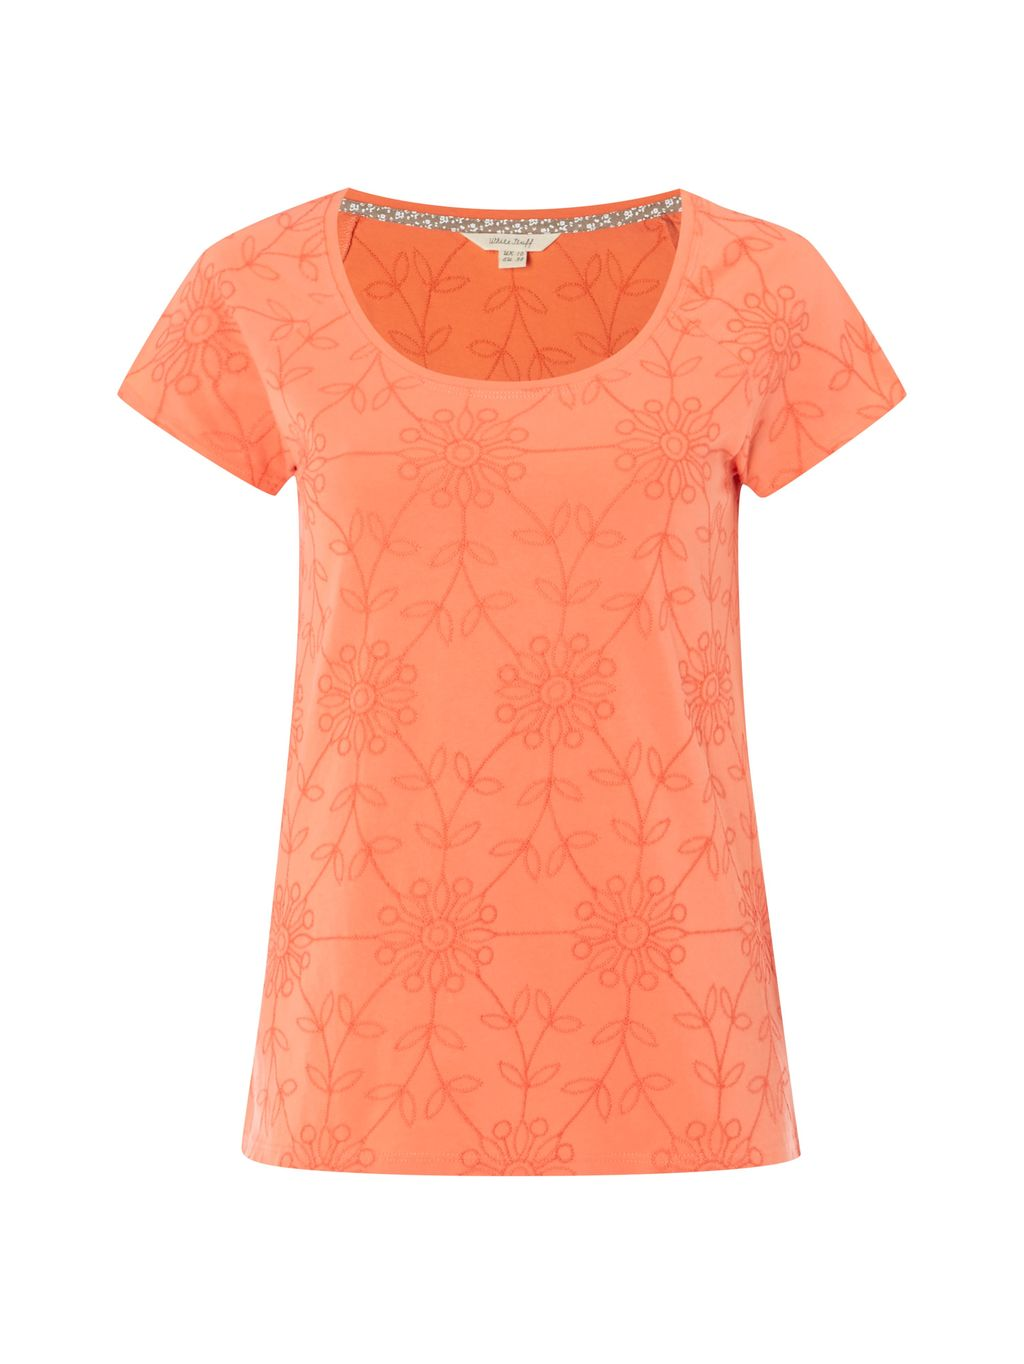 Rosanna Emb Jersey Tee, Pink - neckline: round neck; style: t-shirt; predominant colour: coral; occasions: casual; length: standard; fibres: cotton - 100%; fit: body skimming; sleeve length: short sleeve; sleeve style: standard; pattern type: fabric; pattern size: standard; pattern: florals; texture group: jersey - stretchy/drapey; season: s/s 2016; wardrobe: highlight